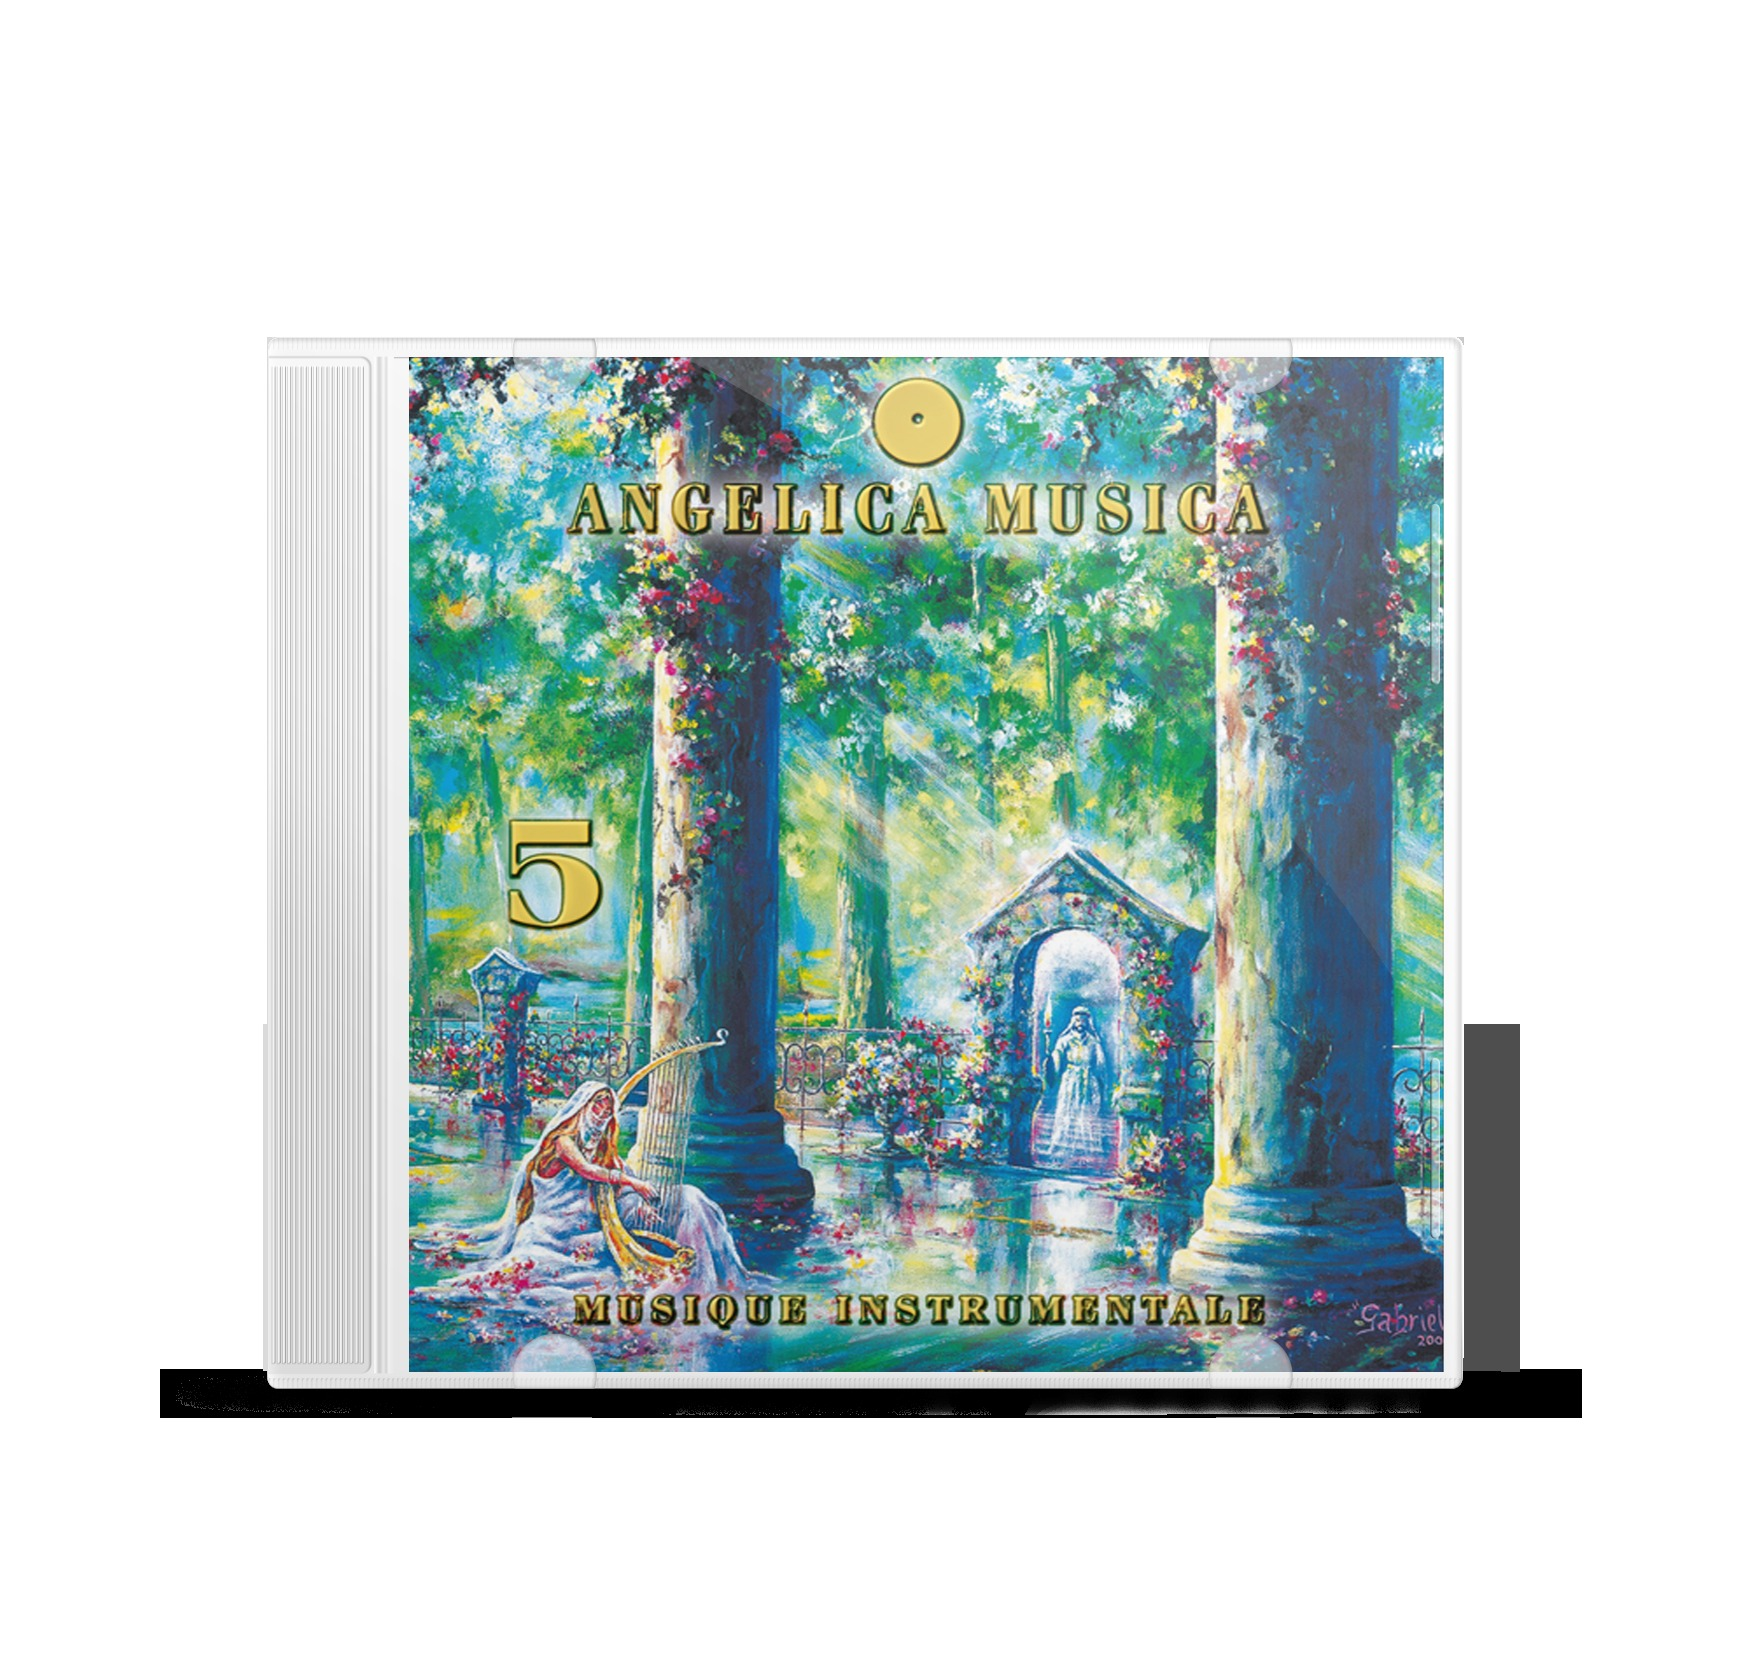 ANGELICA MUSICA CD VOL 5 - ANGES 48 A 43